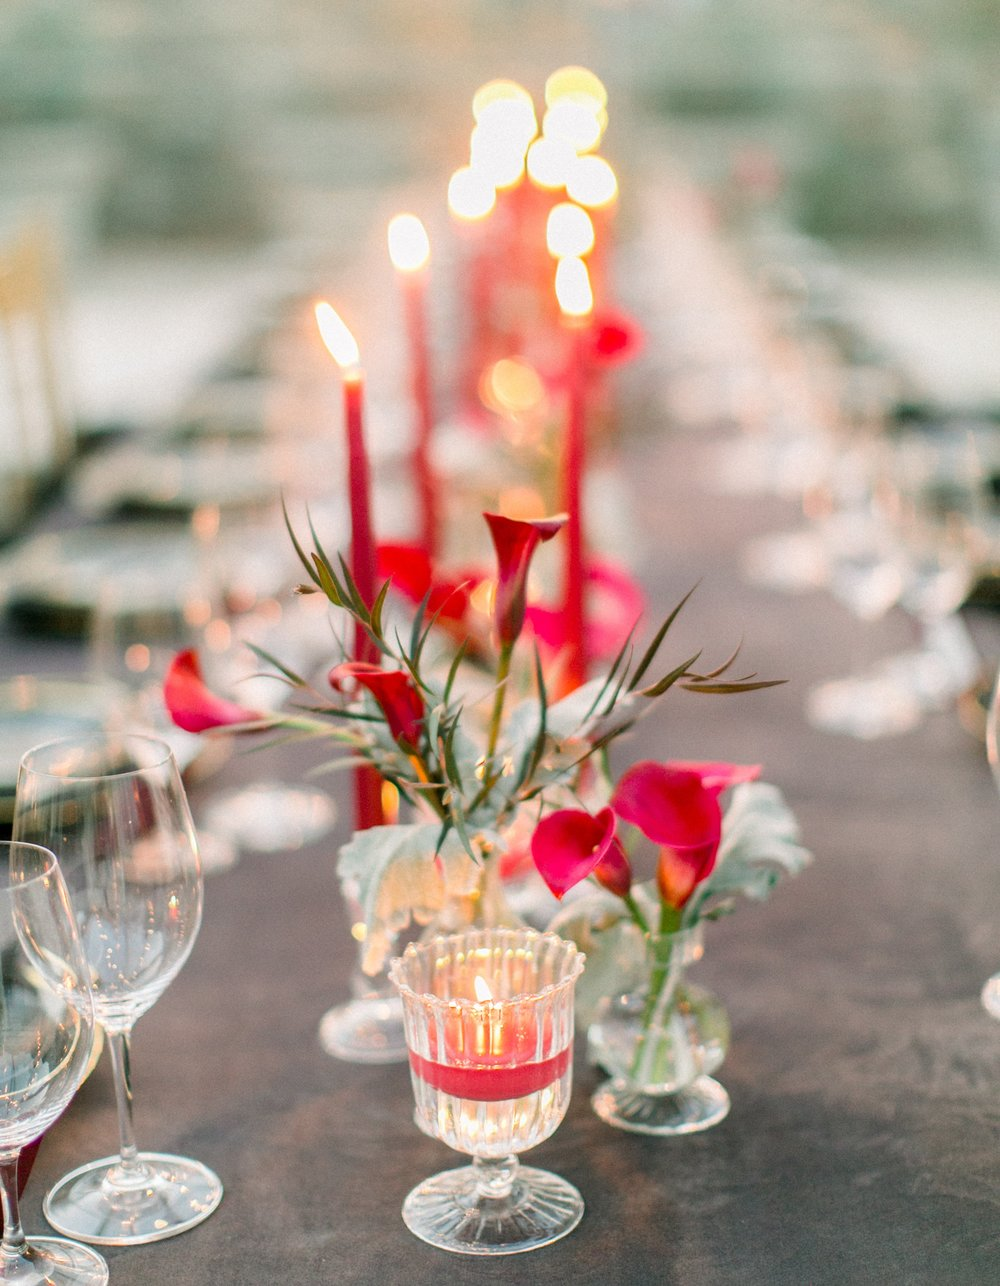 Rehearsal+Dinner+at+Graylyn+Floral+Design+by+Rebecca+Rose+Events